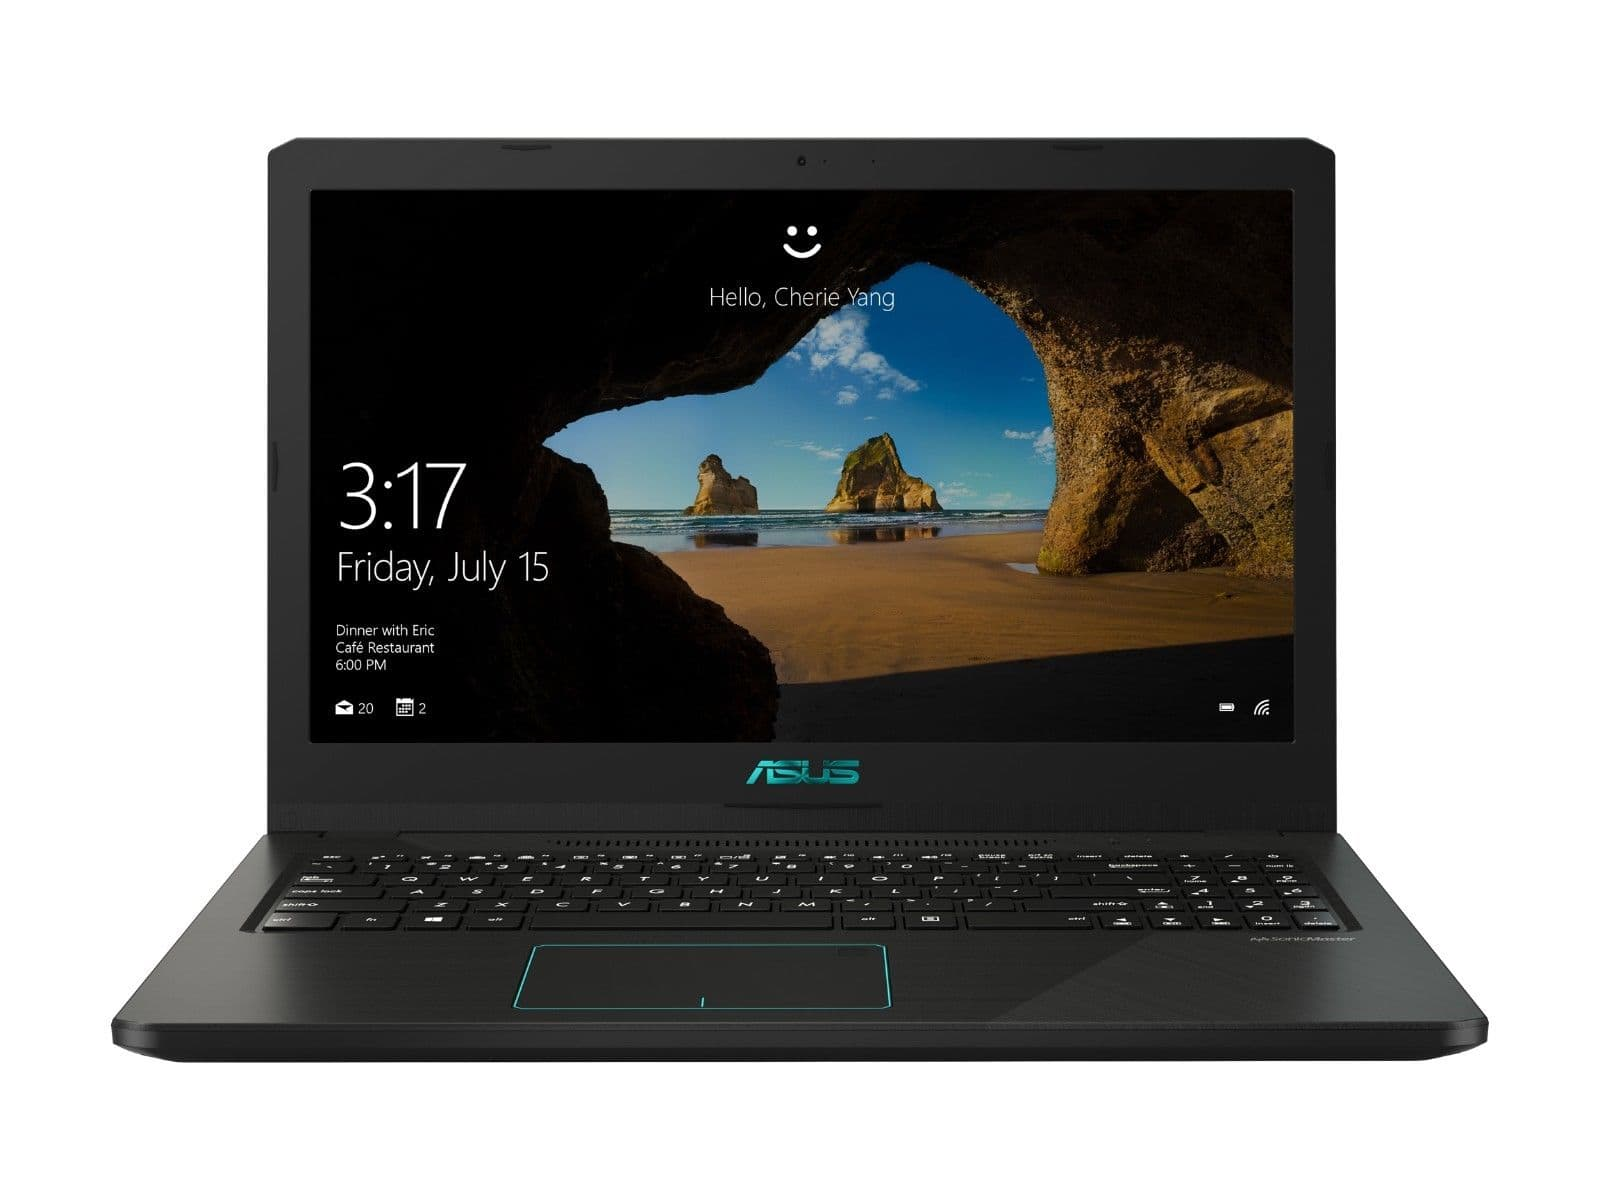 Asus Vivobook K570UD Laptop: Intel Core i5-8250U, 15.6'' 1080p, 8GB DDR4, 256GB SSD, GTX 1050 2GB, Type-C, WIn 10 $599 + Free Shipping @ eBay